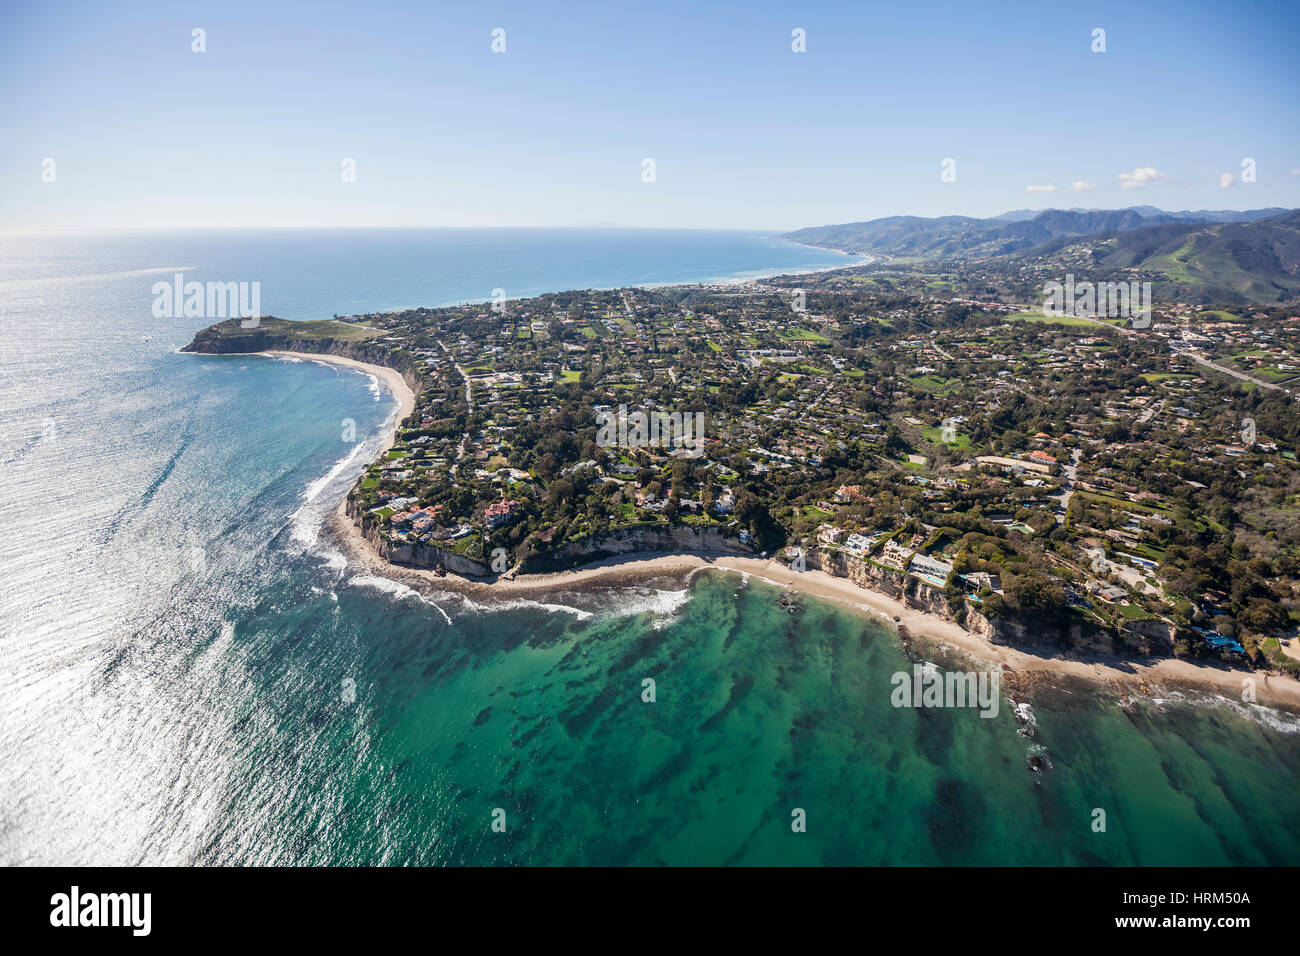 Aerial view towards Point Dume in Malibu California. Stock Photo